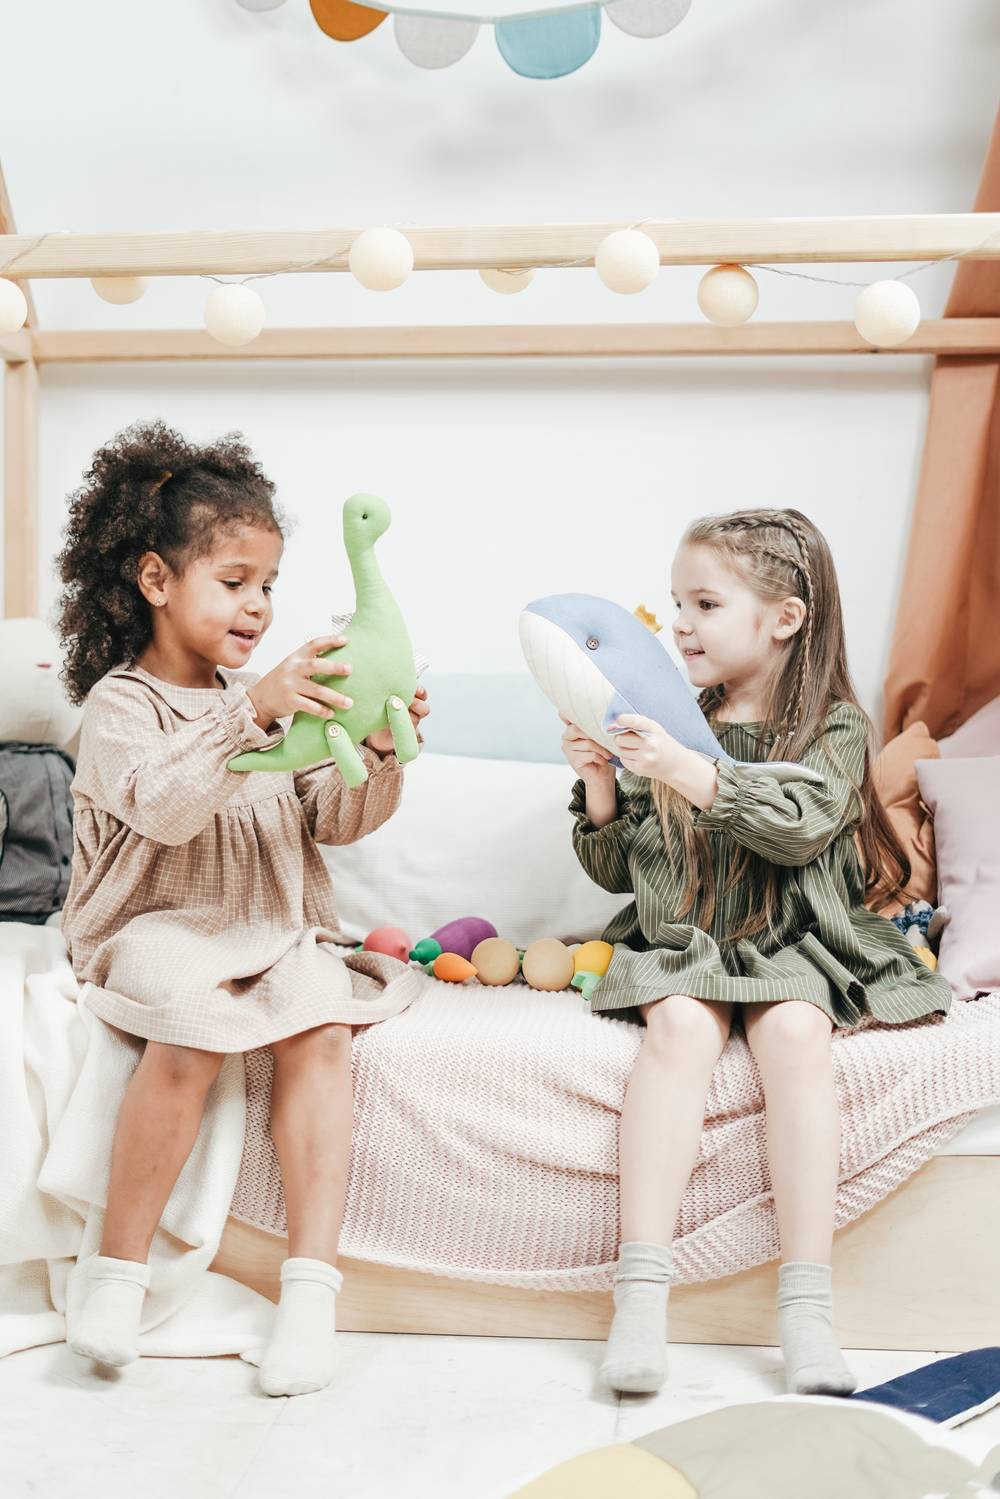 two little girls playing with stuffed animals. one is holding a dinosaur the other is holding a whale.